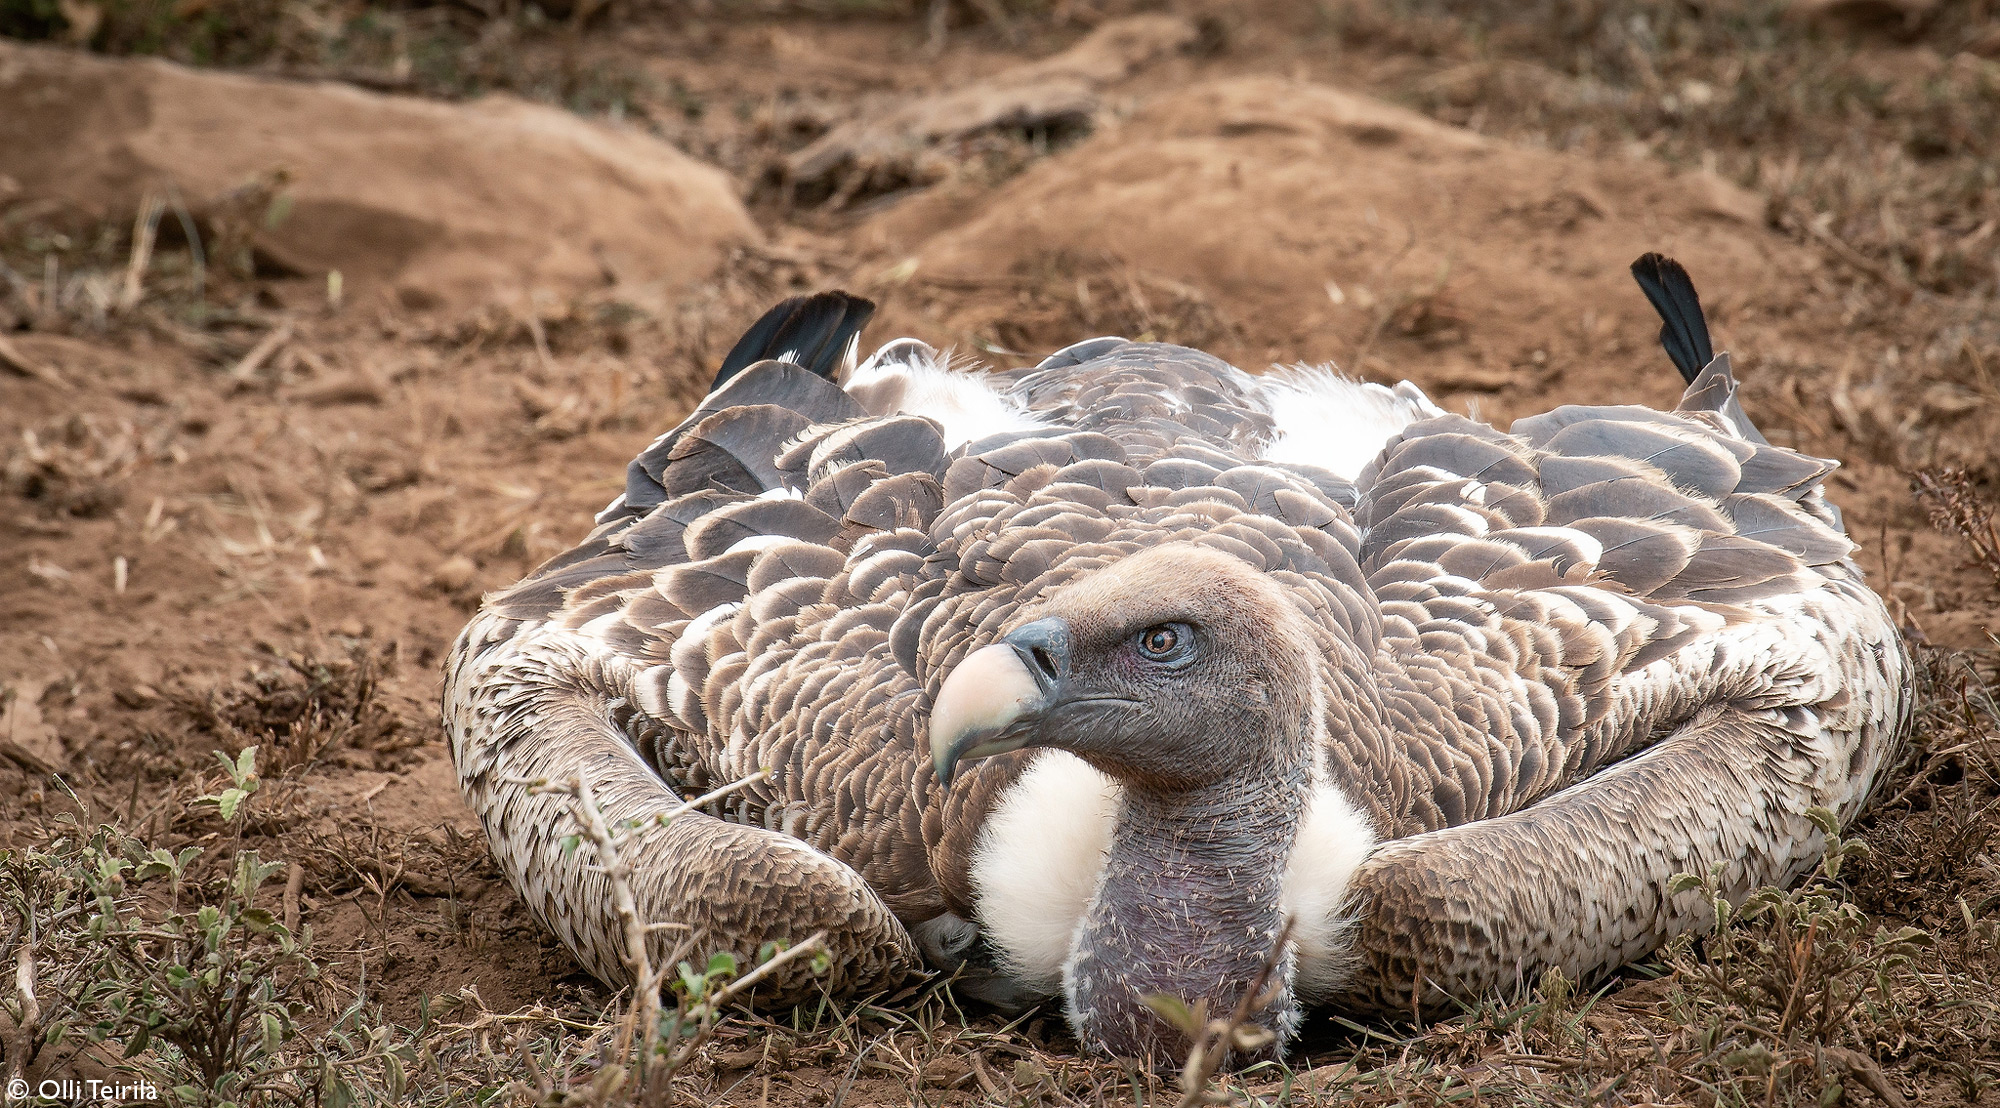 A Rüppell's vulture digesting after a hefty meal in the Ol Kinyei Conservancy, Kenya